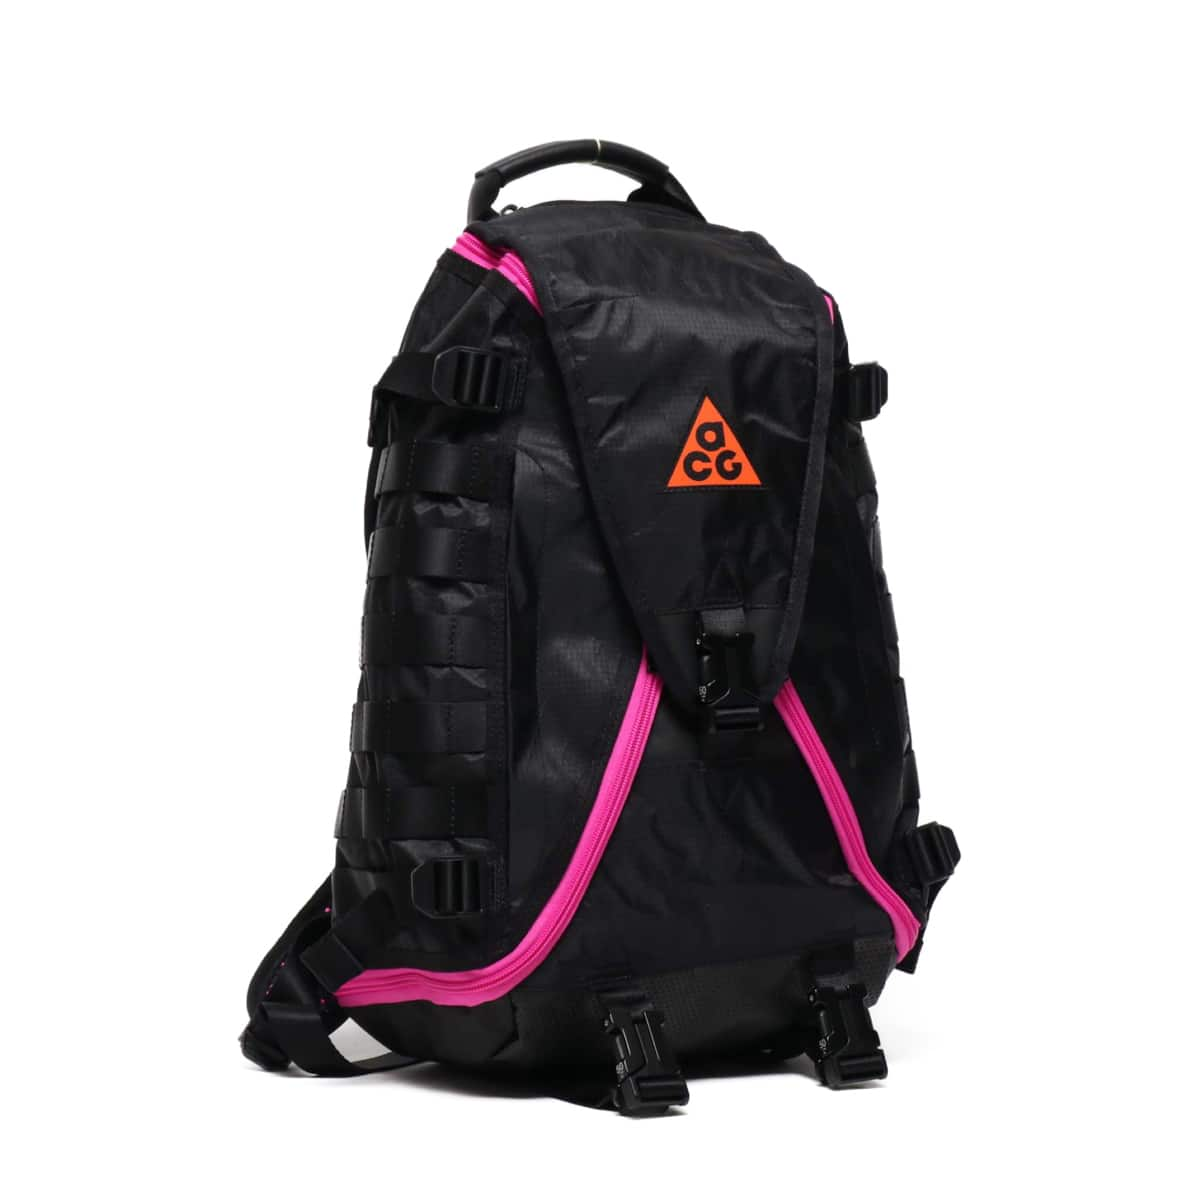 NIKE NK ACG RESPONDER BKPK - SMALL BLACK/ACTIVE FUCHSIA/SAFETY ORANGE 20SP-S_photo_large